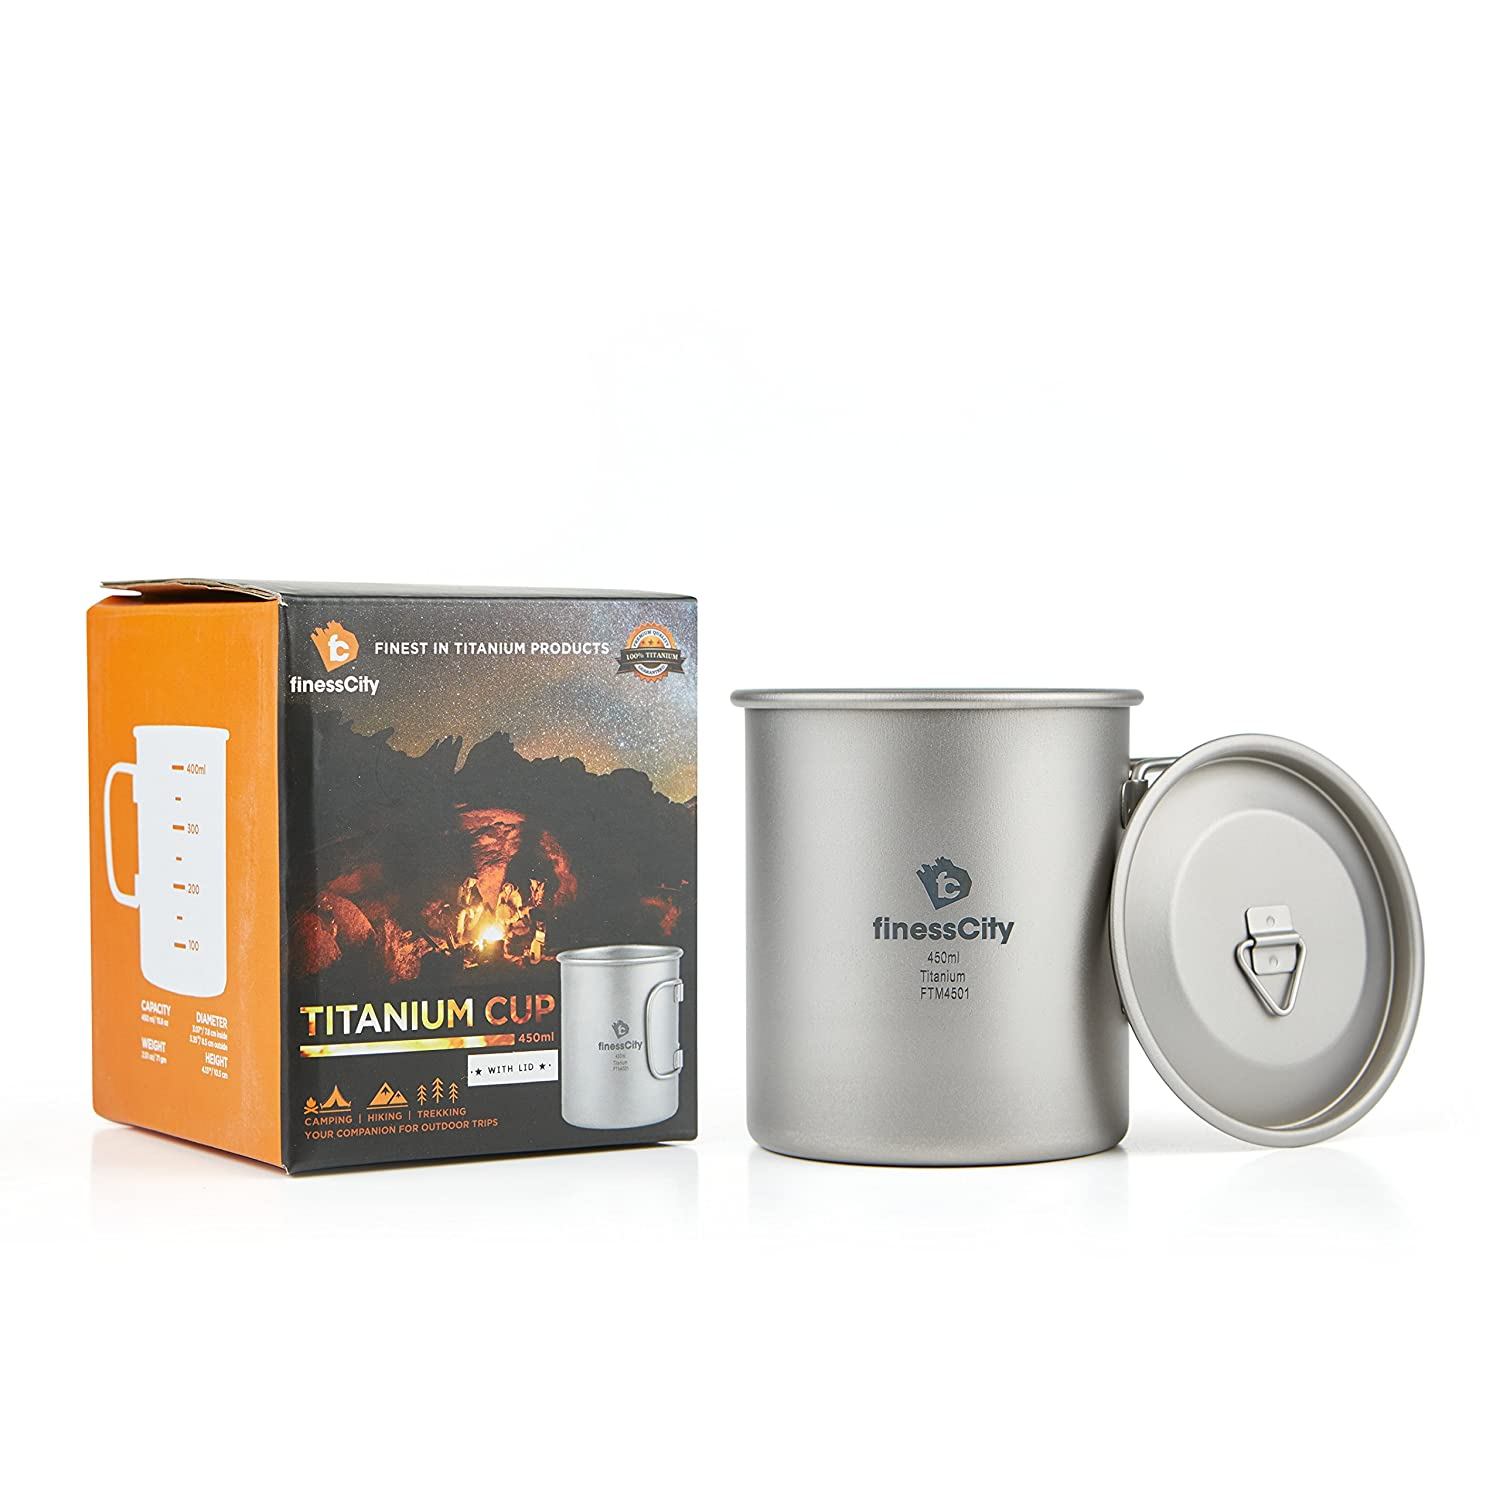 Camping Cup (450ml/ 600ml) With & Without Lid, Extra Strong & Ultra Lightweight (Ti) Camping Mug With Measurement Marks, Titanium Cup for Hiking / Backpacking / Camping in Easy to Store Cloth Case 450ml Camping Cup Without Lid finessCity FTM4501